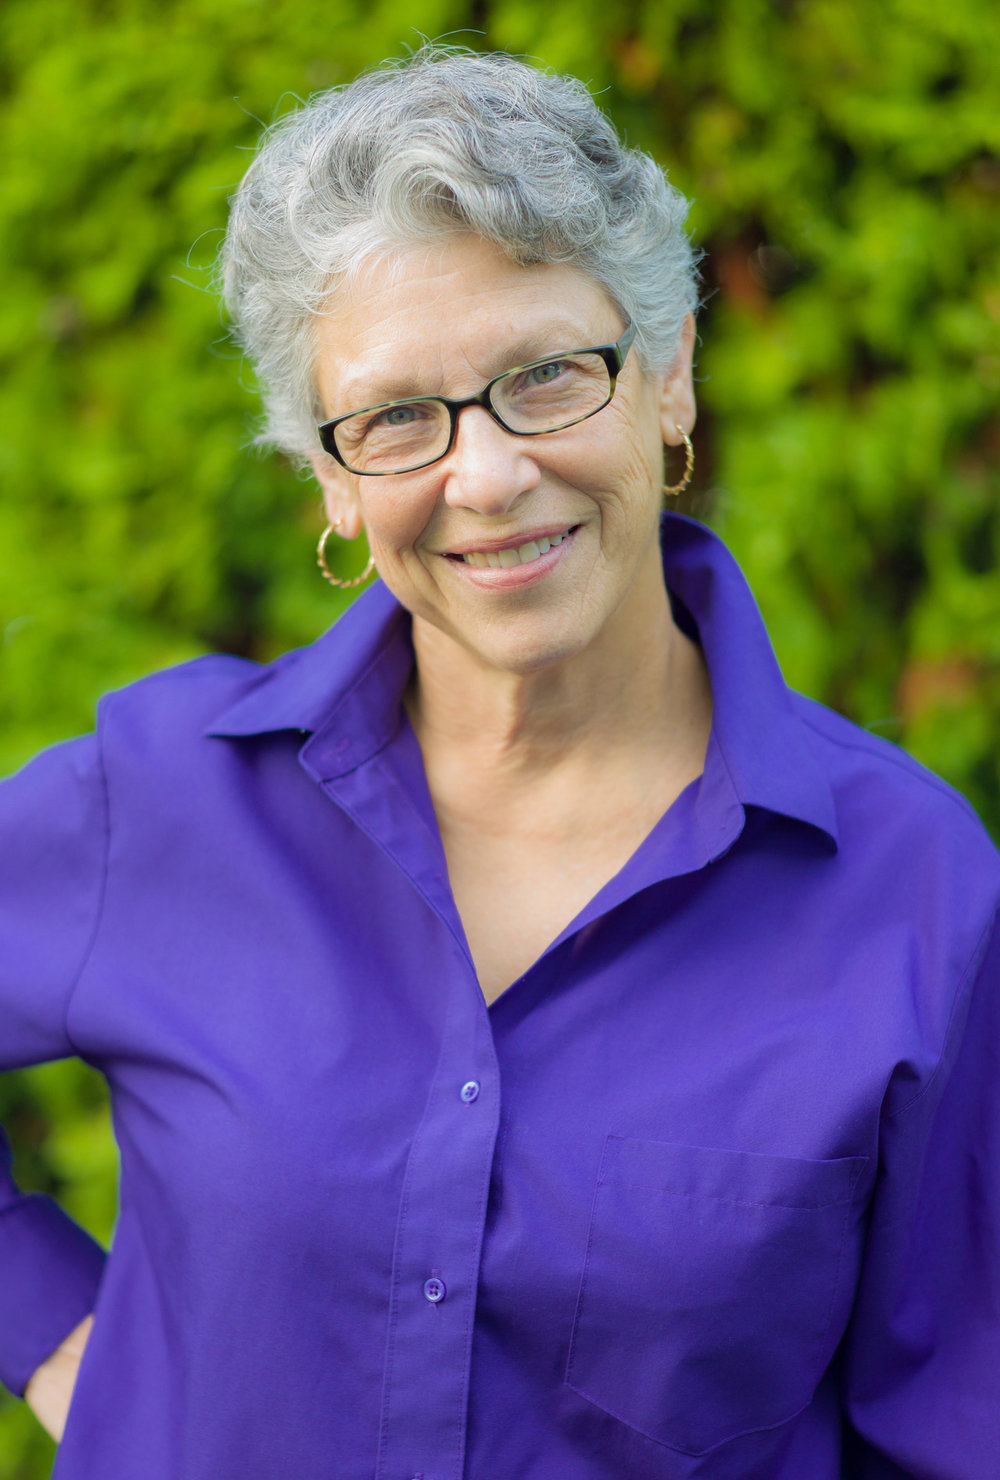 Deborah Nedelman, PhD, MFA, is the coauthor of two nonfiction books:  A Guide for Beginning Psychotherapists  and  Still Sexy After All These Years . Her short fiction appears in  The Concho River Review, Contemporary World Literature, Persimmon Tree ,  Adelaide Literary Award Anthology, The Masters Review , and  Literary Orphans , among other places. Her first novel,  What We Take for Truth , will be available in June 2019. She is also a manuscript coach and leads writing workshops, and she lives on Whidbey Island.